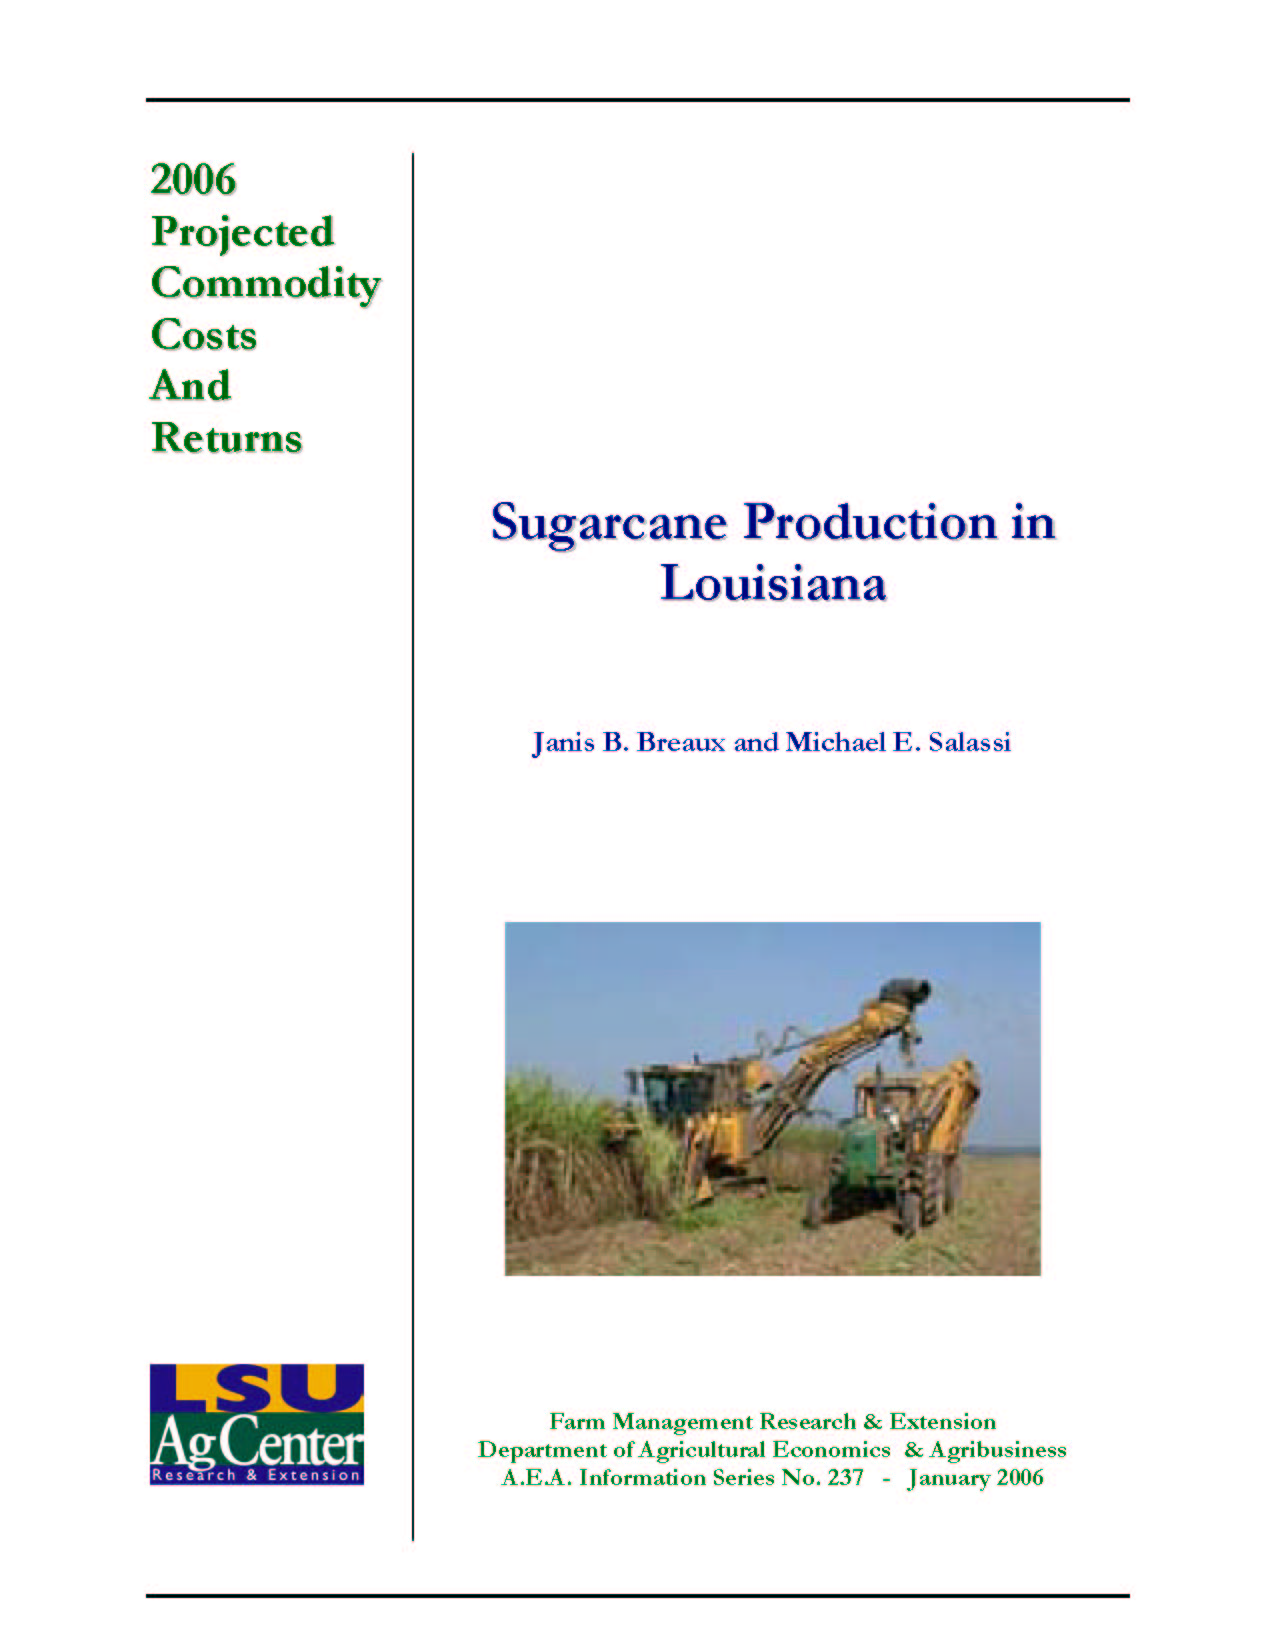 2006 Projected Louisiana Sugarcane Production Costs